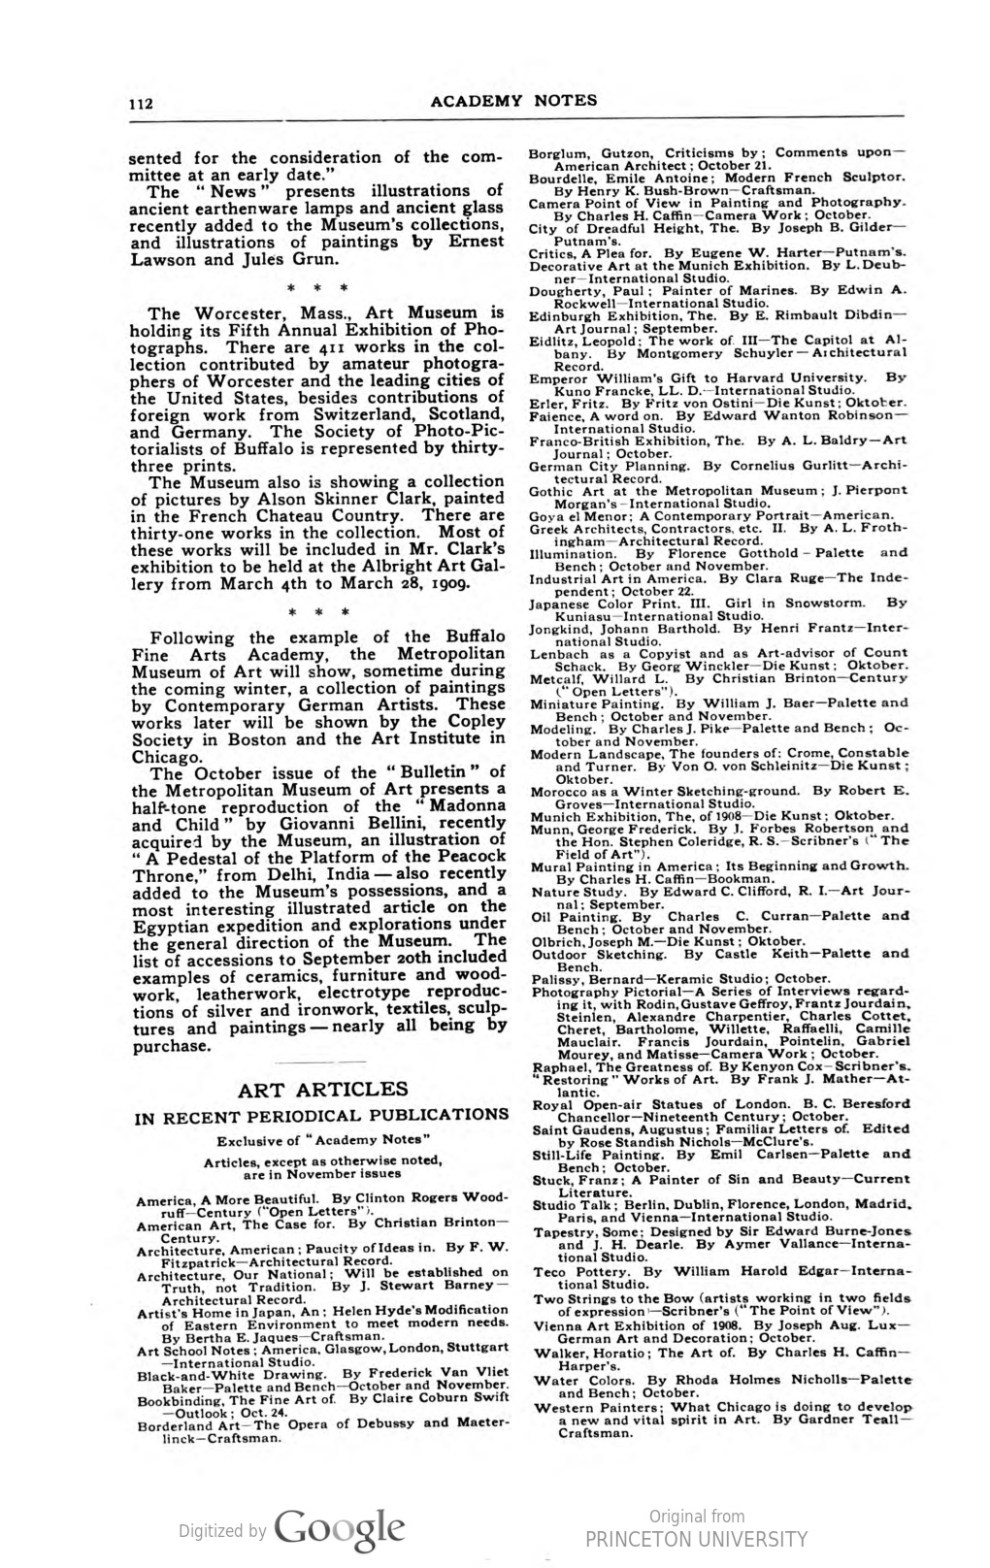 """Academy Notes, Buffalo Fine Arts Academy, Albright Art Gallery, Buffalo, NY, """"Art Museum Notes"""", December, 1908, Volume 4, Number 7, page 110-112, not illustrated"""